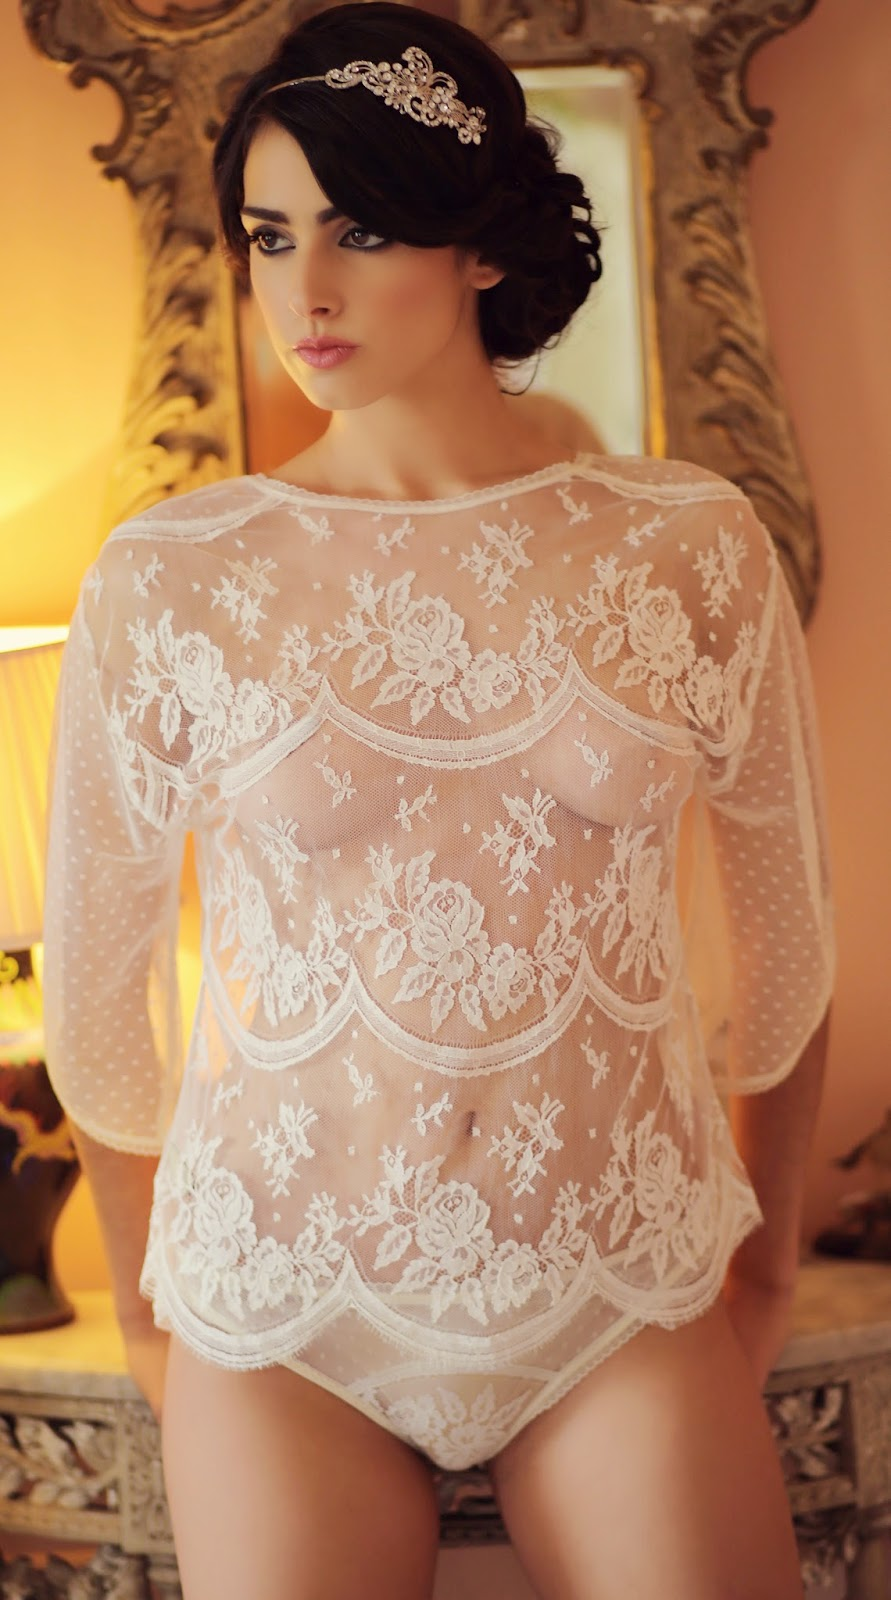 Shell Belle Couture - The Bridal Lingerie Collection